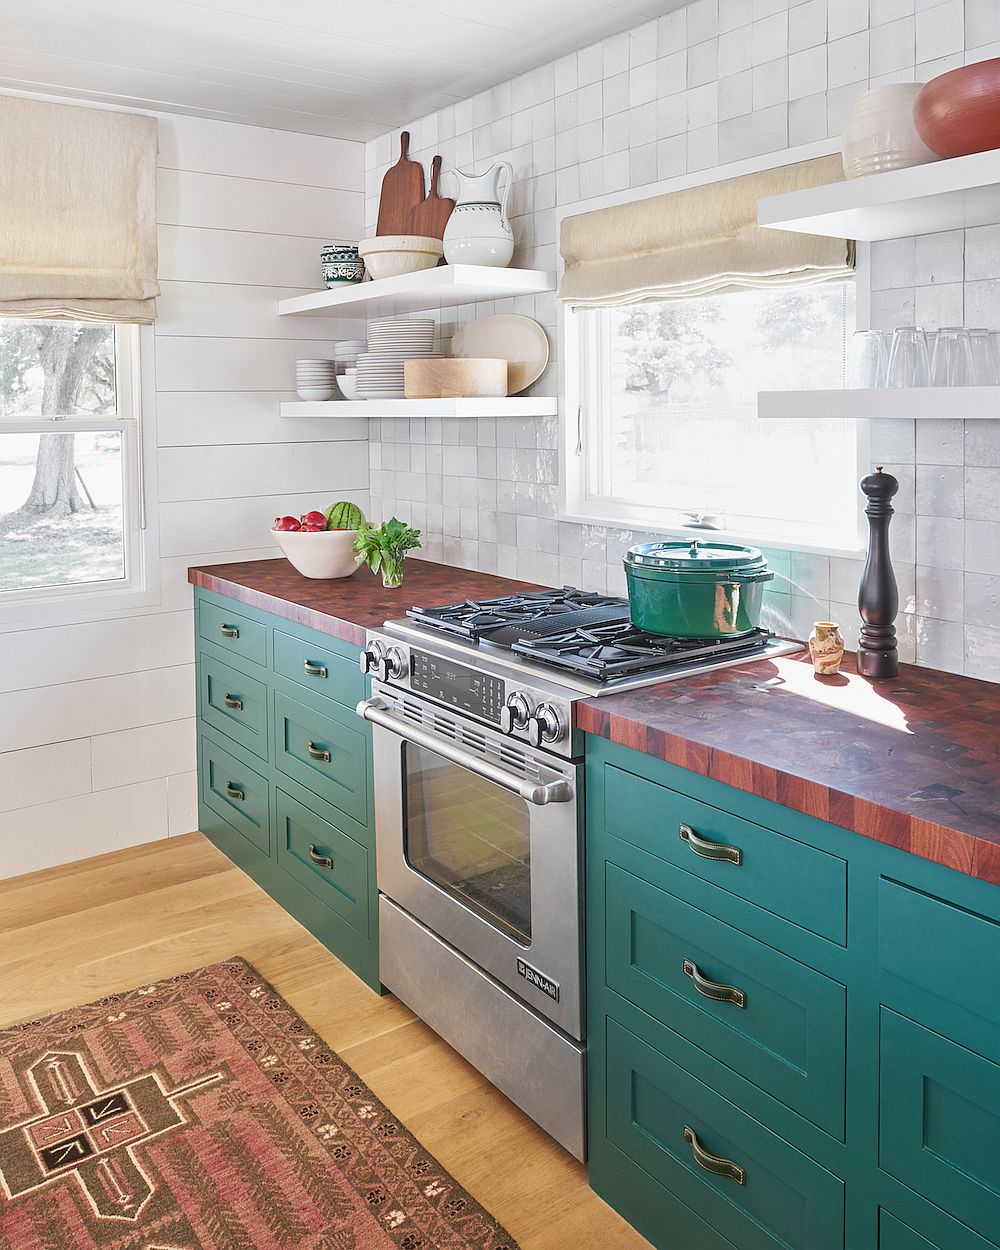 Butcher block kitchen coutertops combined with teal cabinets and white tiled backsplash